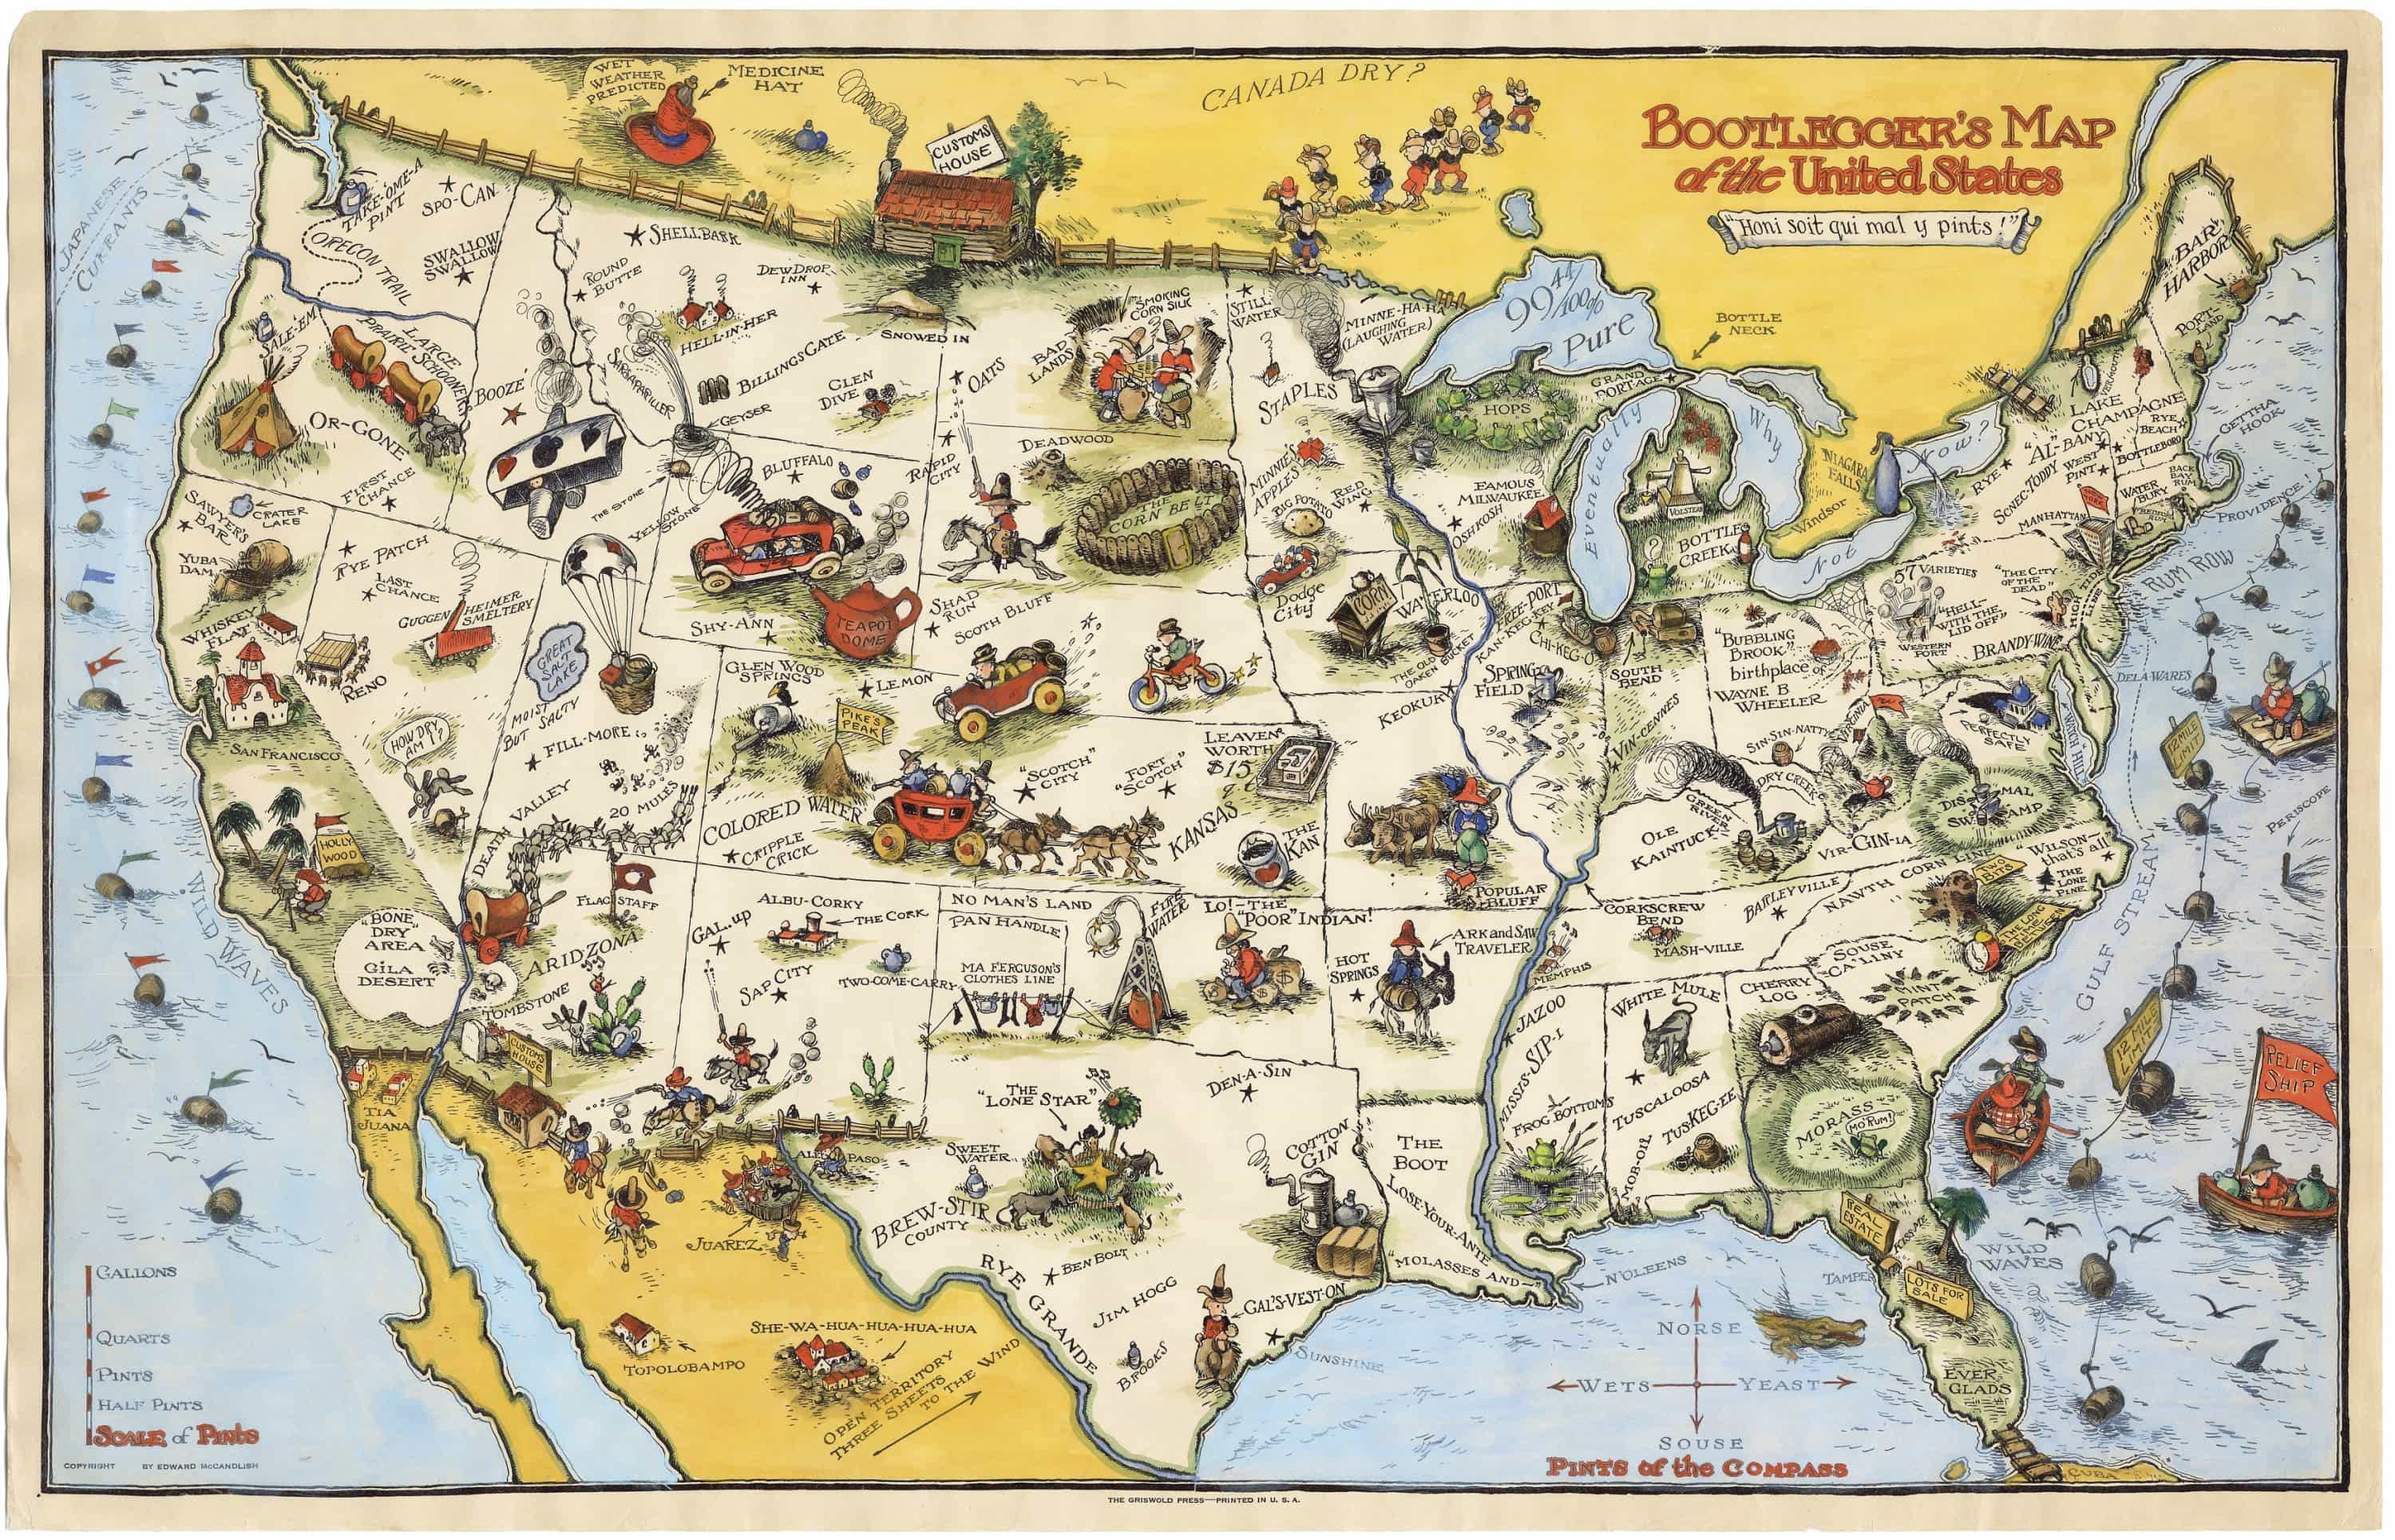 The famous Bootlegger's Map of the United States on united states regional stereotypes, united states government, united states of shame, georgia alcohol, united states fun fact,